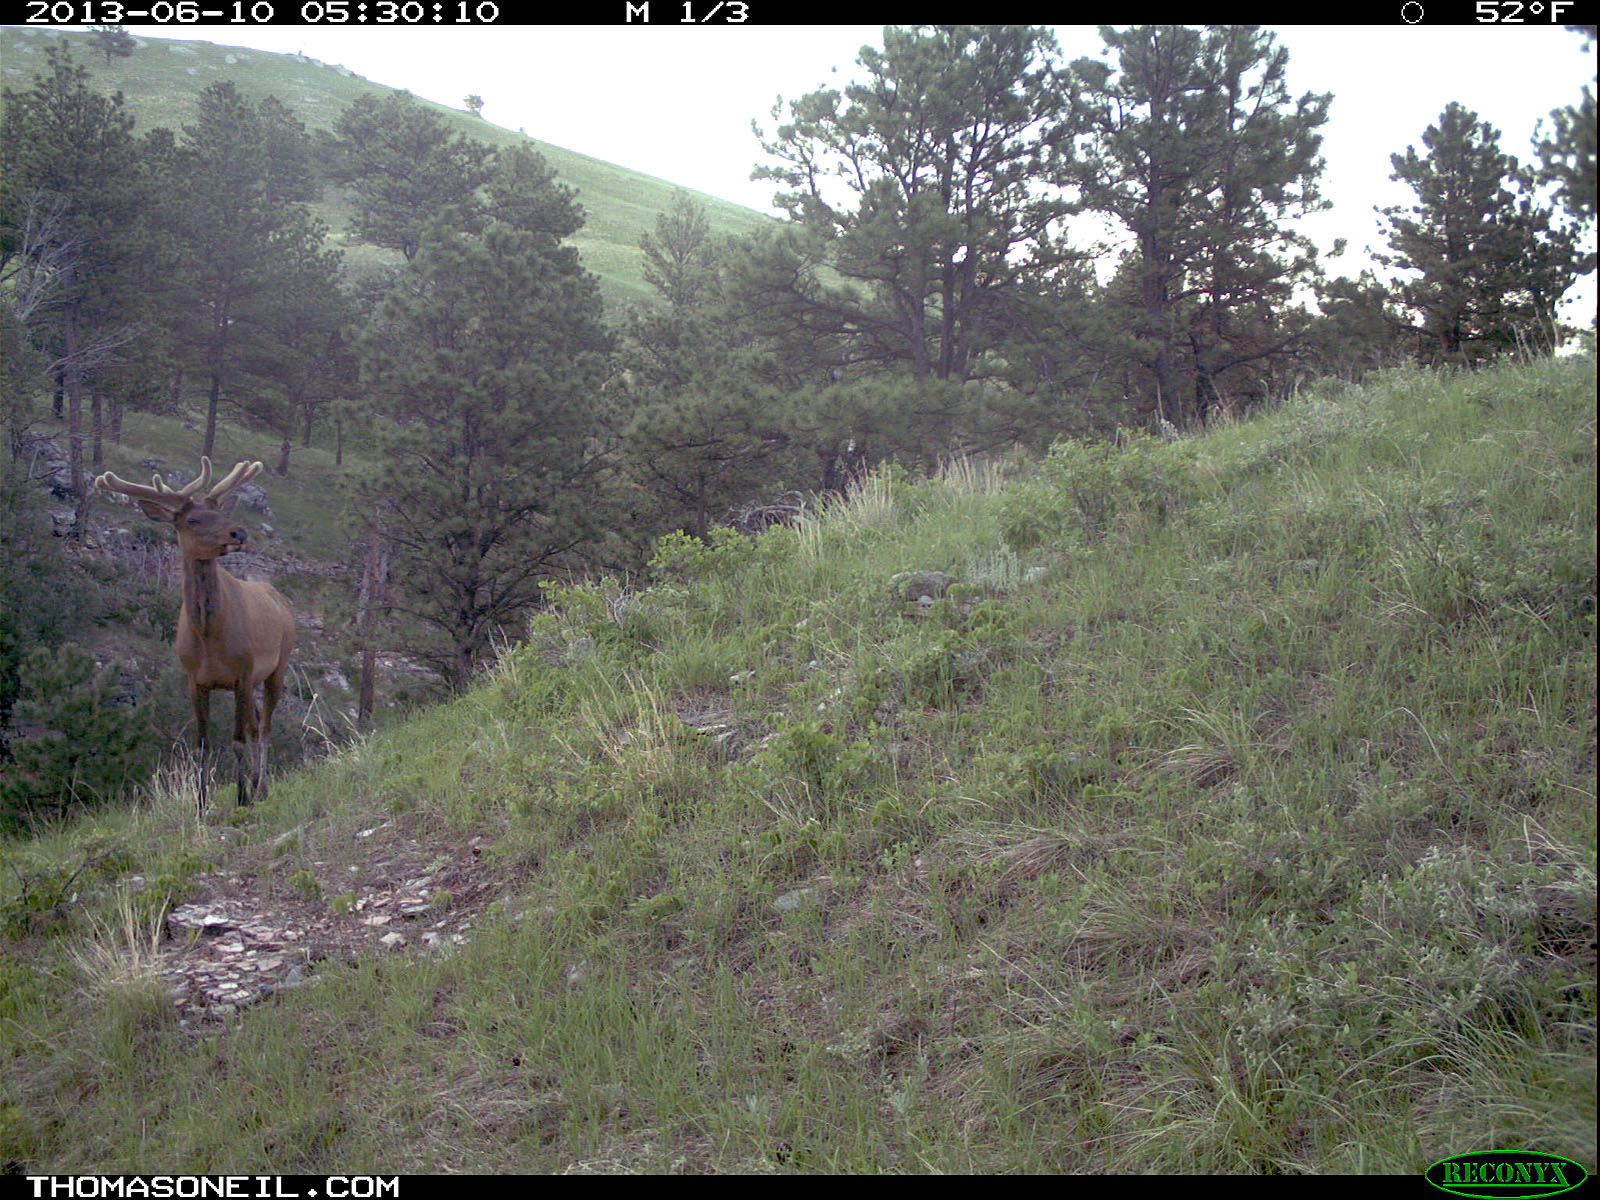 Elk on trail camera, Wind Cave National Park, South Dakota, June 10, 2013.